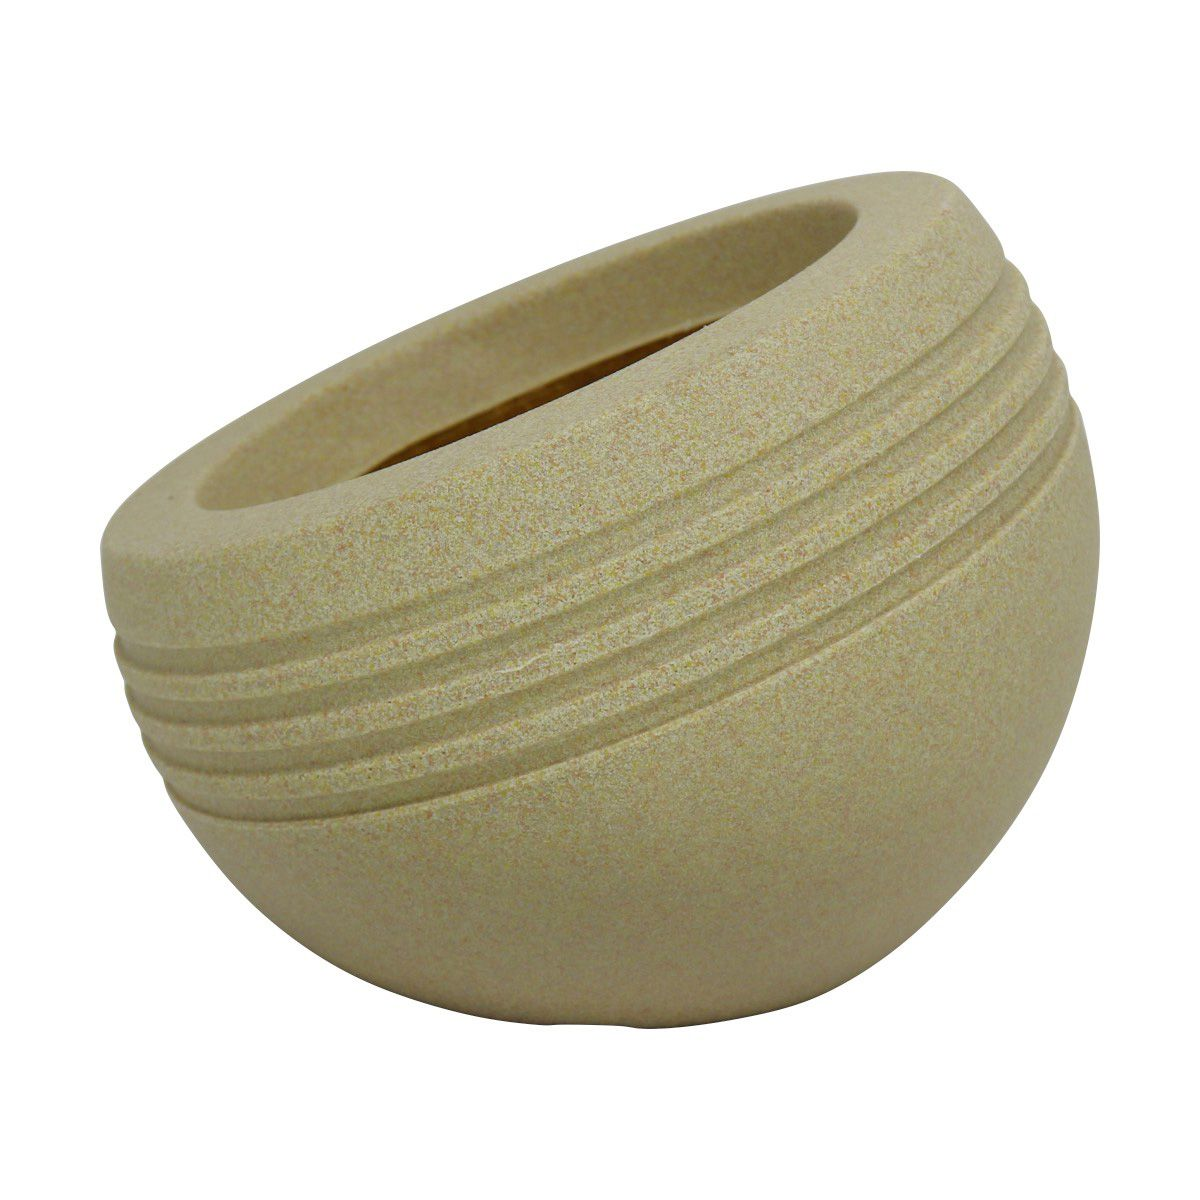 Vaso Inclinato Mini Vogue cor Areia 20cm x 23,5cm - VIPM